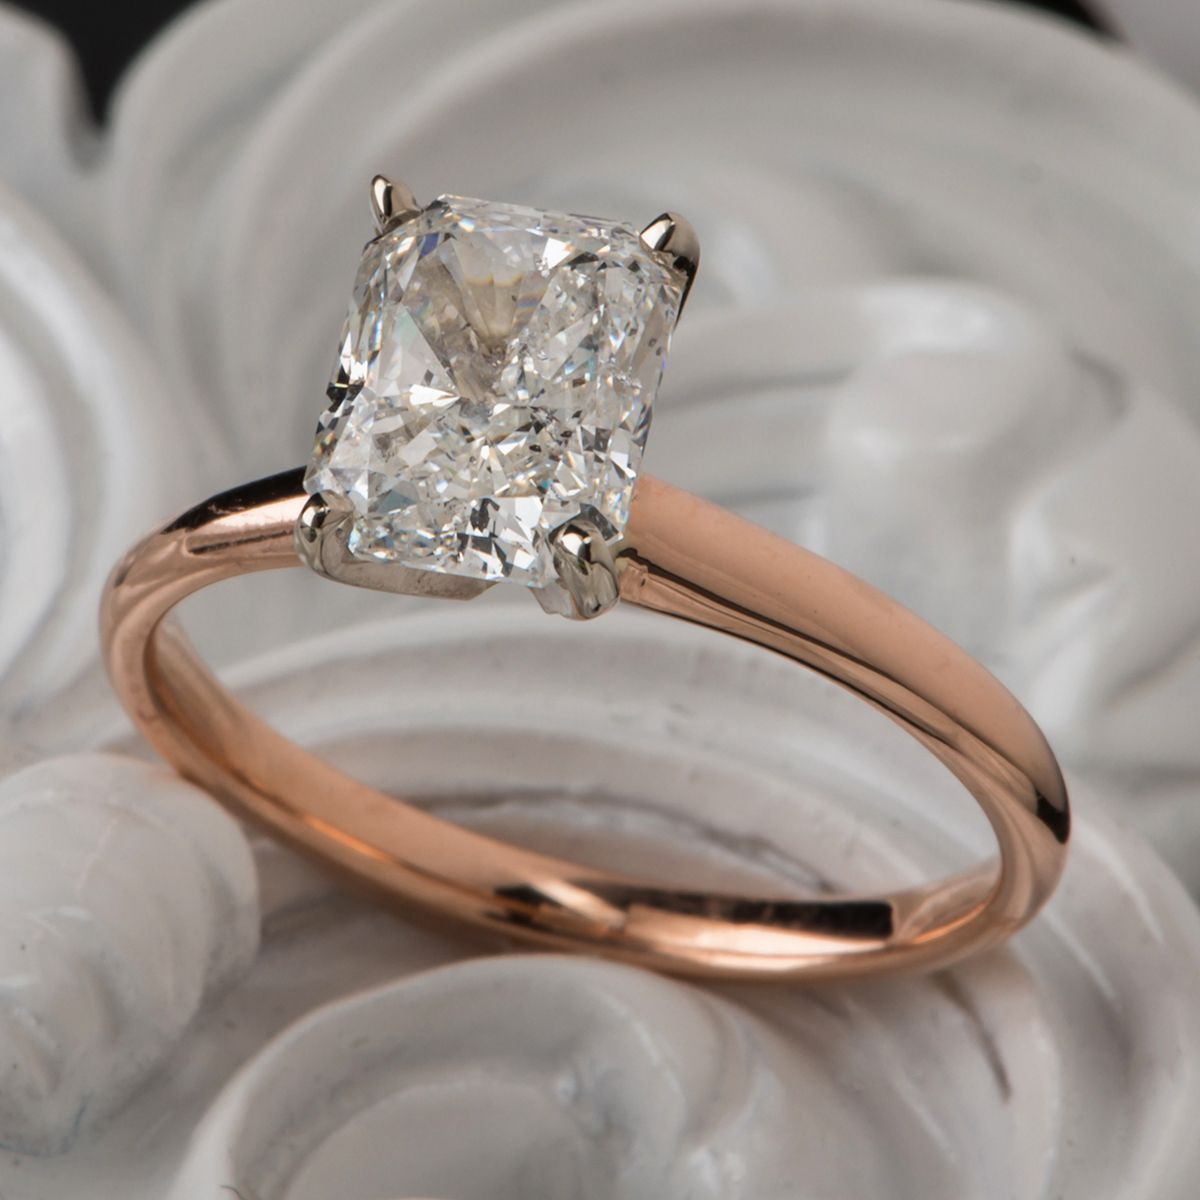 A beautiful radiant cut diamond sparkles brightly in this sweet and